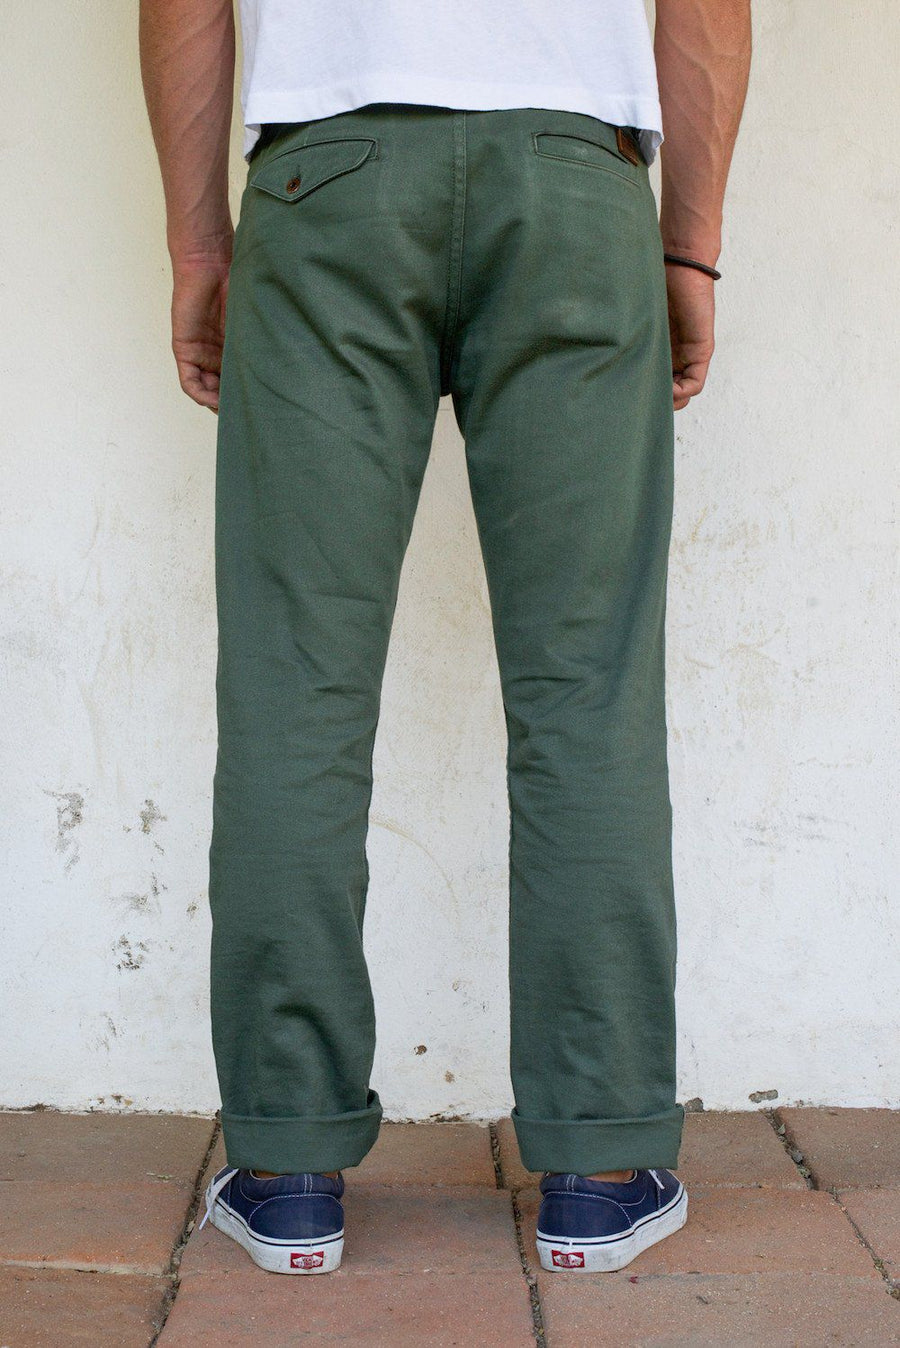 Workers Chino Slim Fit  1990's US Army Deadstock